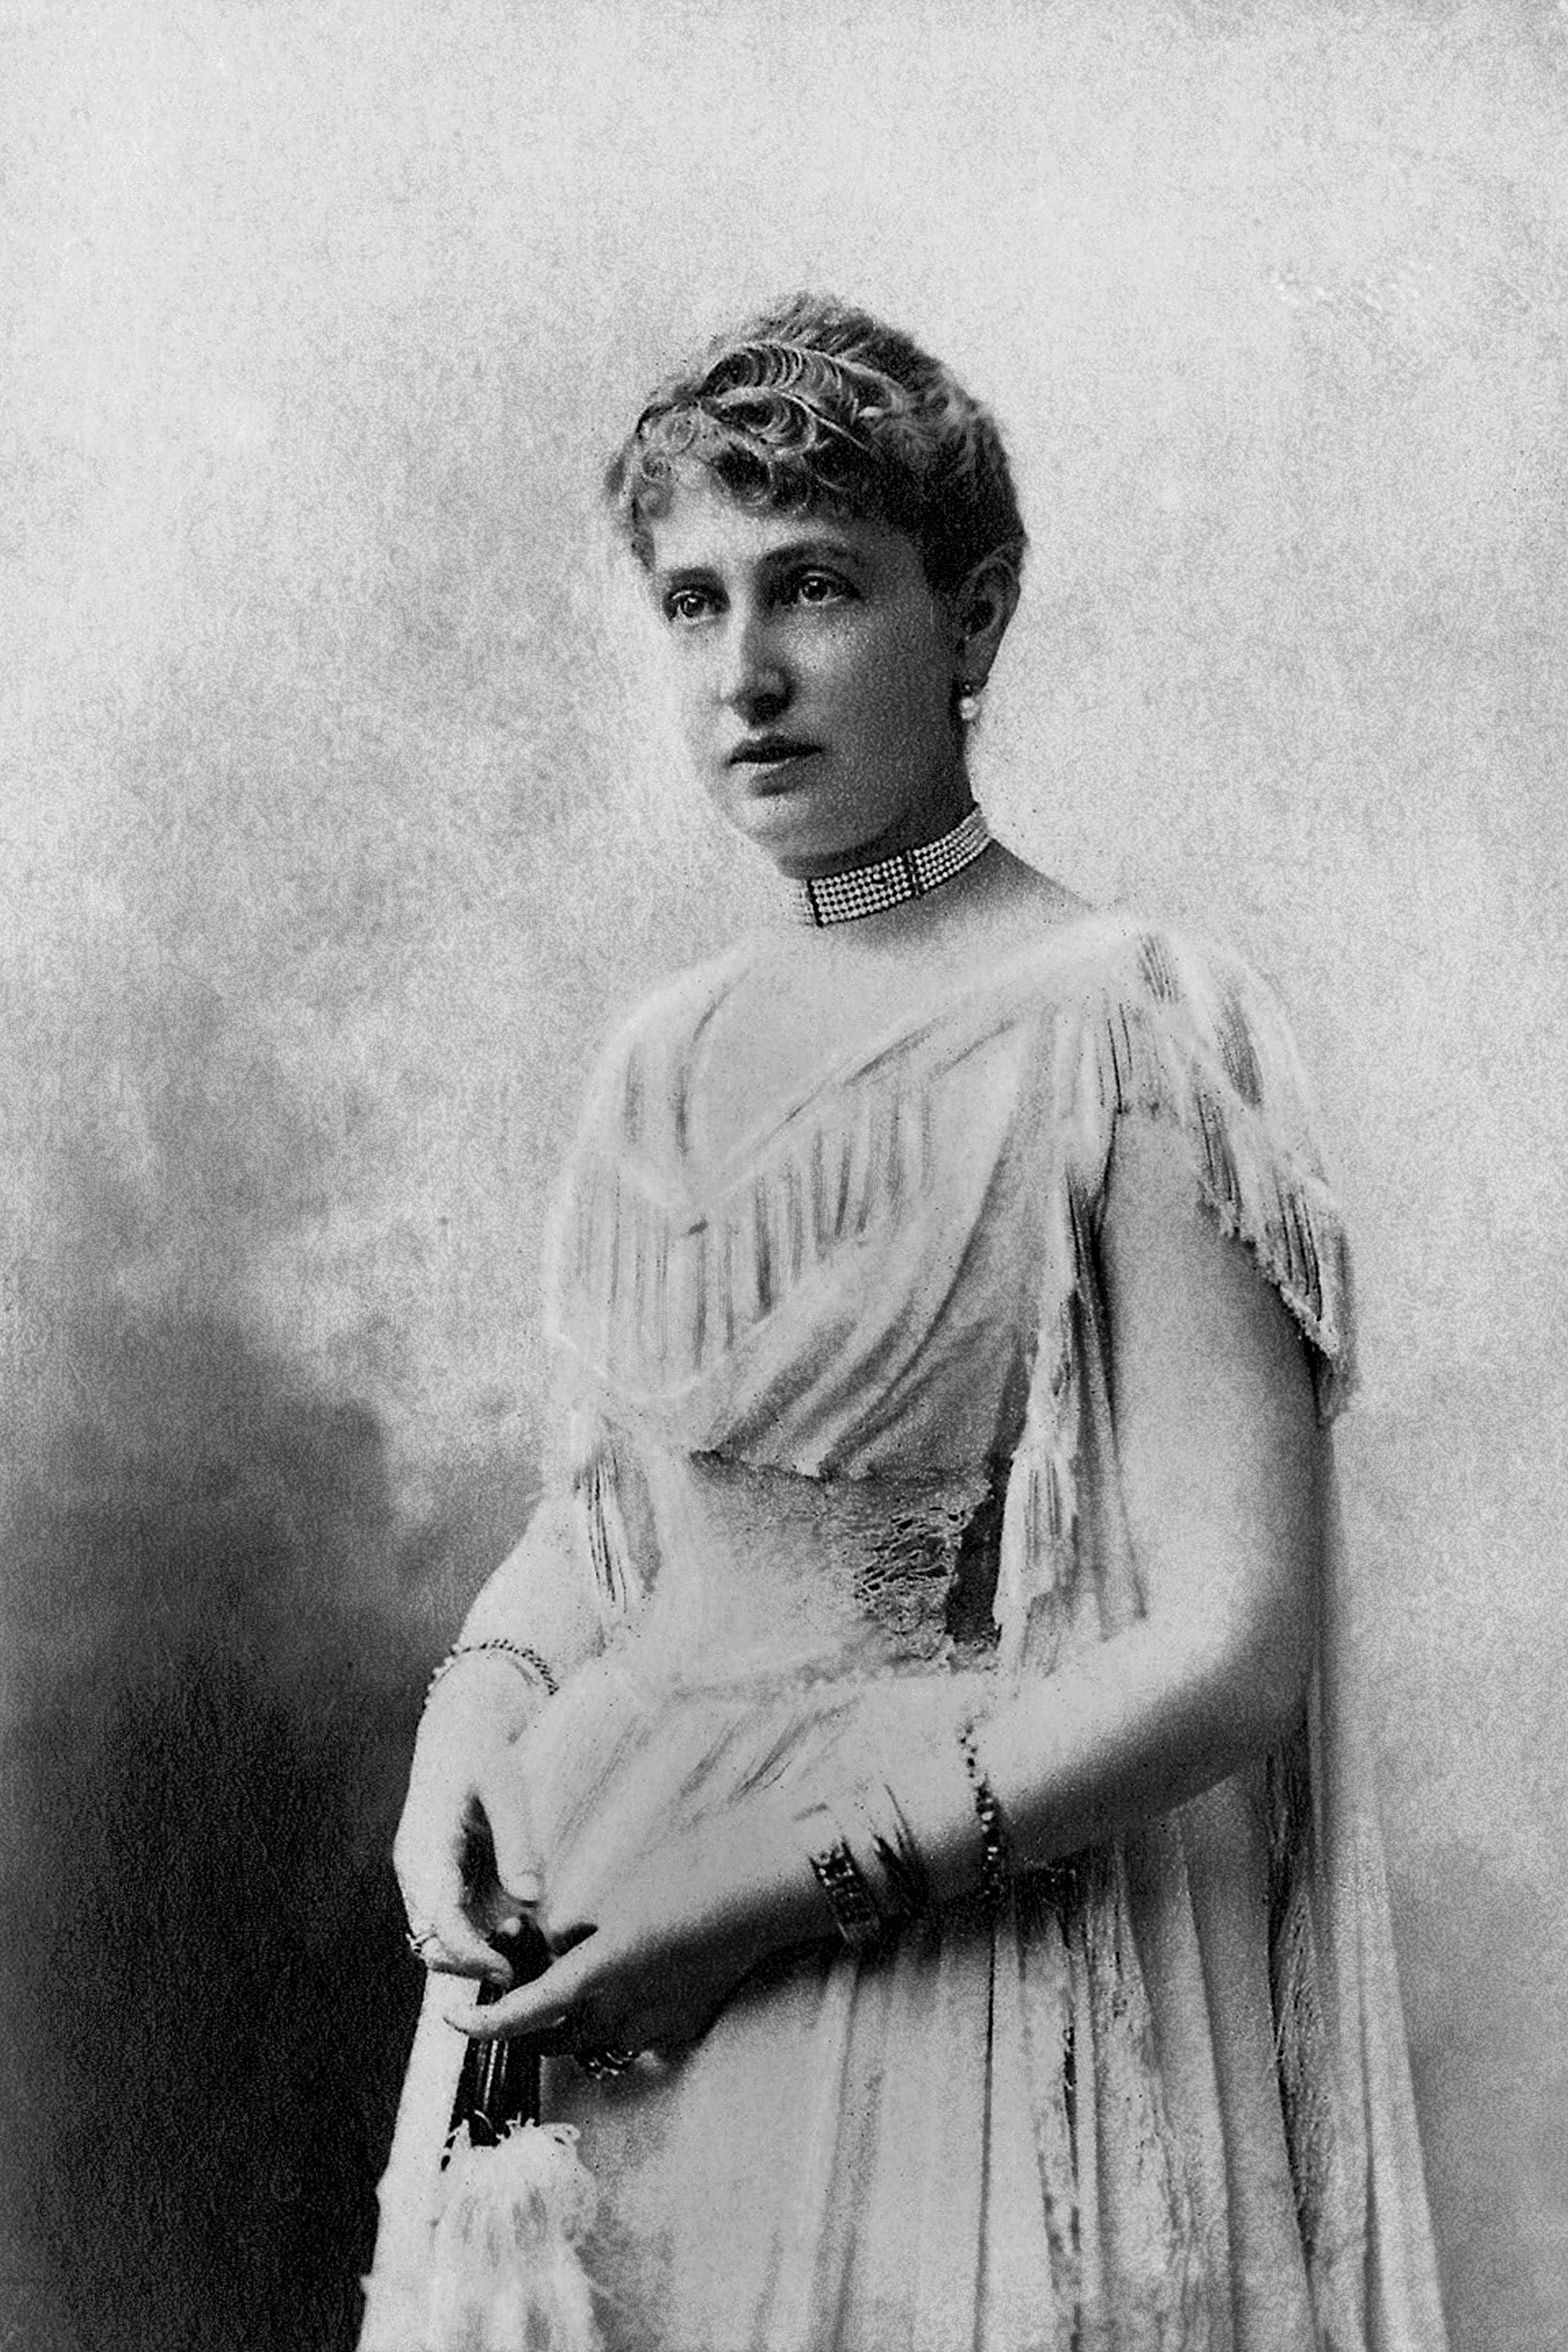 Marie Alice Heine (1858-1925) devint Princesse de Monaco en epousant AlbertIerPrincedeMonaco de la famille Grimaldi , le 31 octobre 1889. Leur divorce est prononce le 30 mai 1902 , photographiee entre 1889 et 1900 , extrait de la collection Felix Potin , 500 celebrites contemporaines , Souverains etrangers et leur famille Monaco --- Marie Alice Heine (1858-1925) , became the Princess of Monaco by marrying AlbertIerPrincedeMonaco of the family Grimaldi, October 31, 1889.  Their divorce east pronounces on May 30, 1902 , photographied between 1889 and 1900, extracted from the collection Felix Potin, 500 contemporary celebrities , Foreign sovereigns and their family Monaco